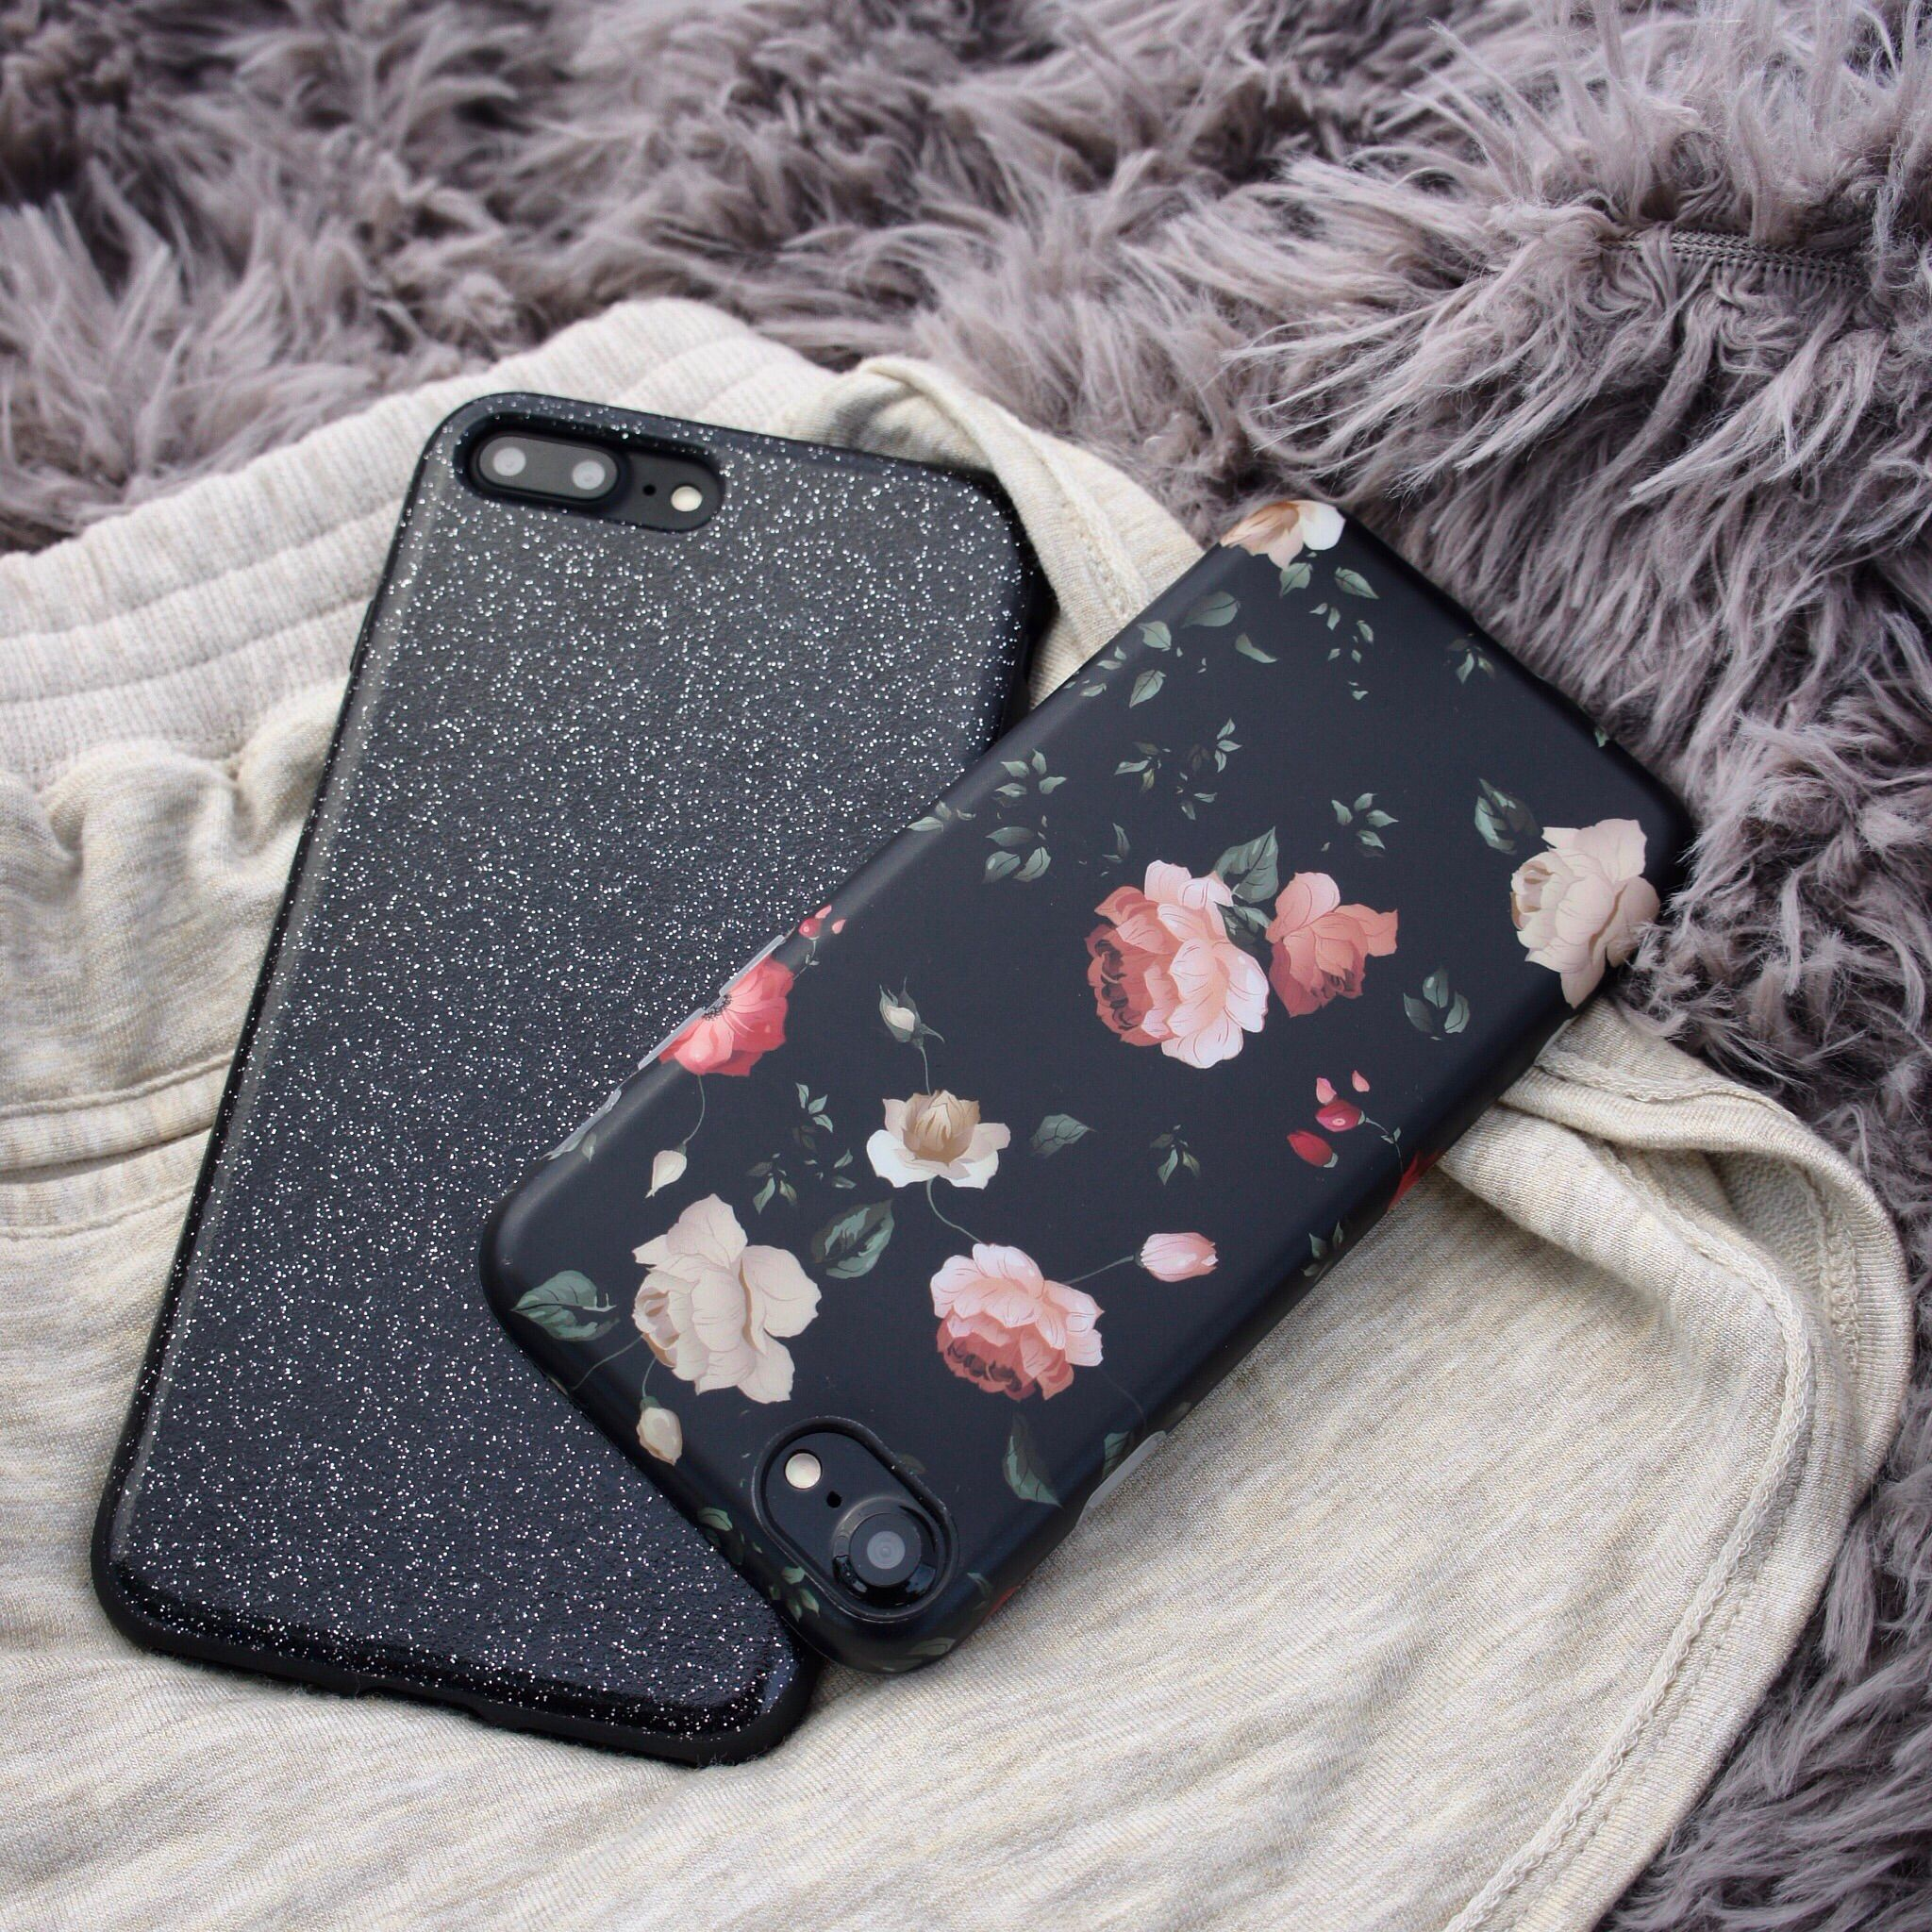 sweet dreams loves glam case in black dark rose florals for iphone 7 iphone 7 plus from elemental cases